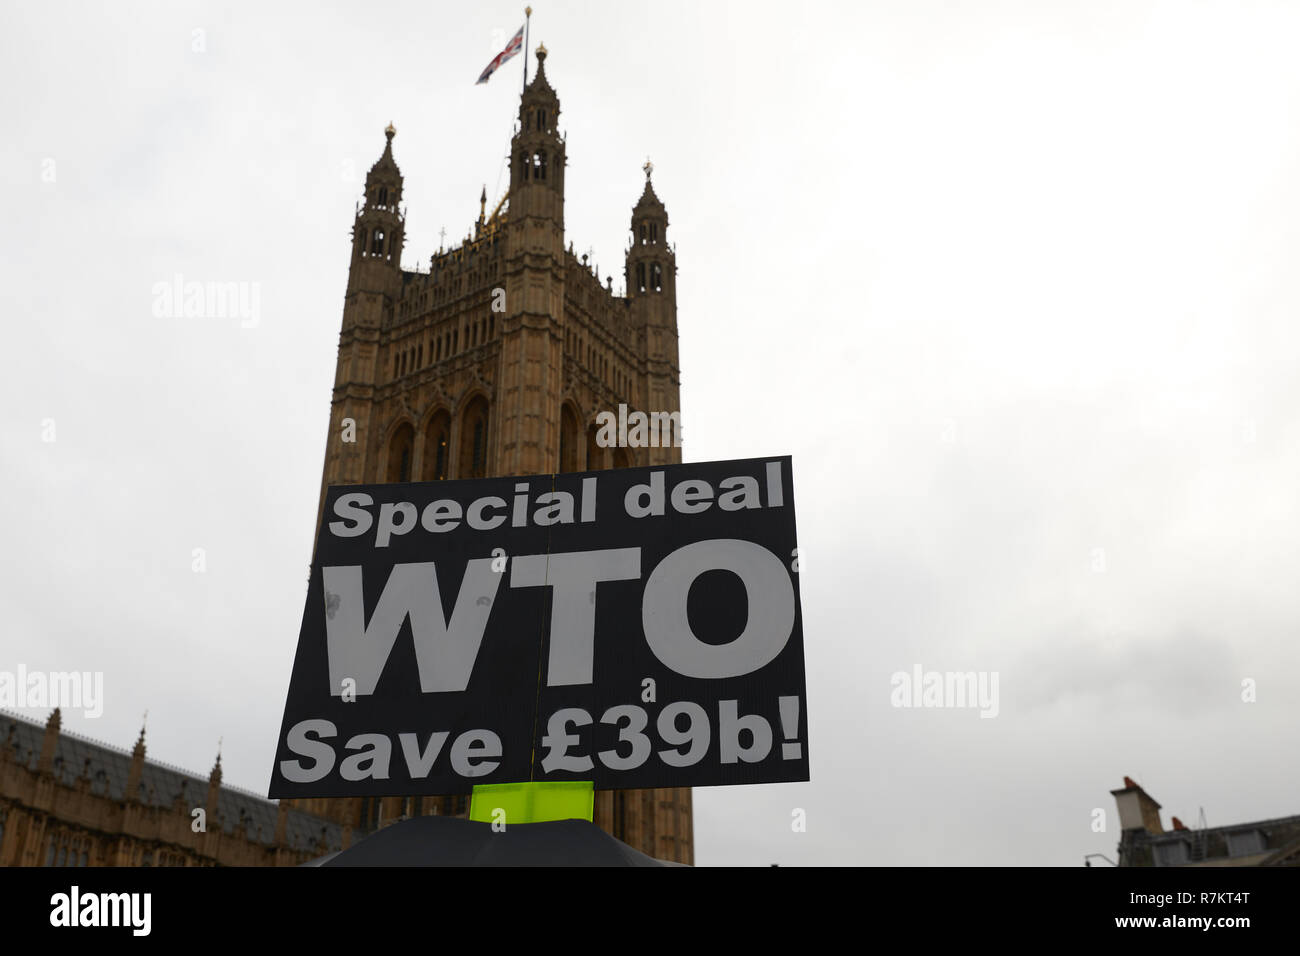 London, UK. 10th December 2018.A Pro-Leave supporting placard held aloft opposite the Houses of Parliament during a day of Brexit campaigning. Stock Photo